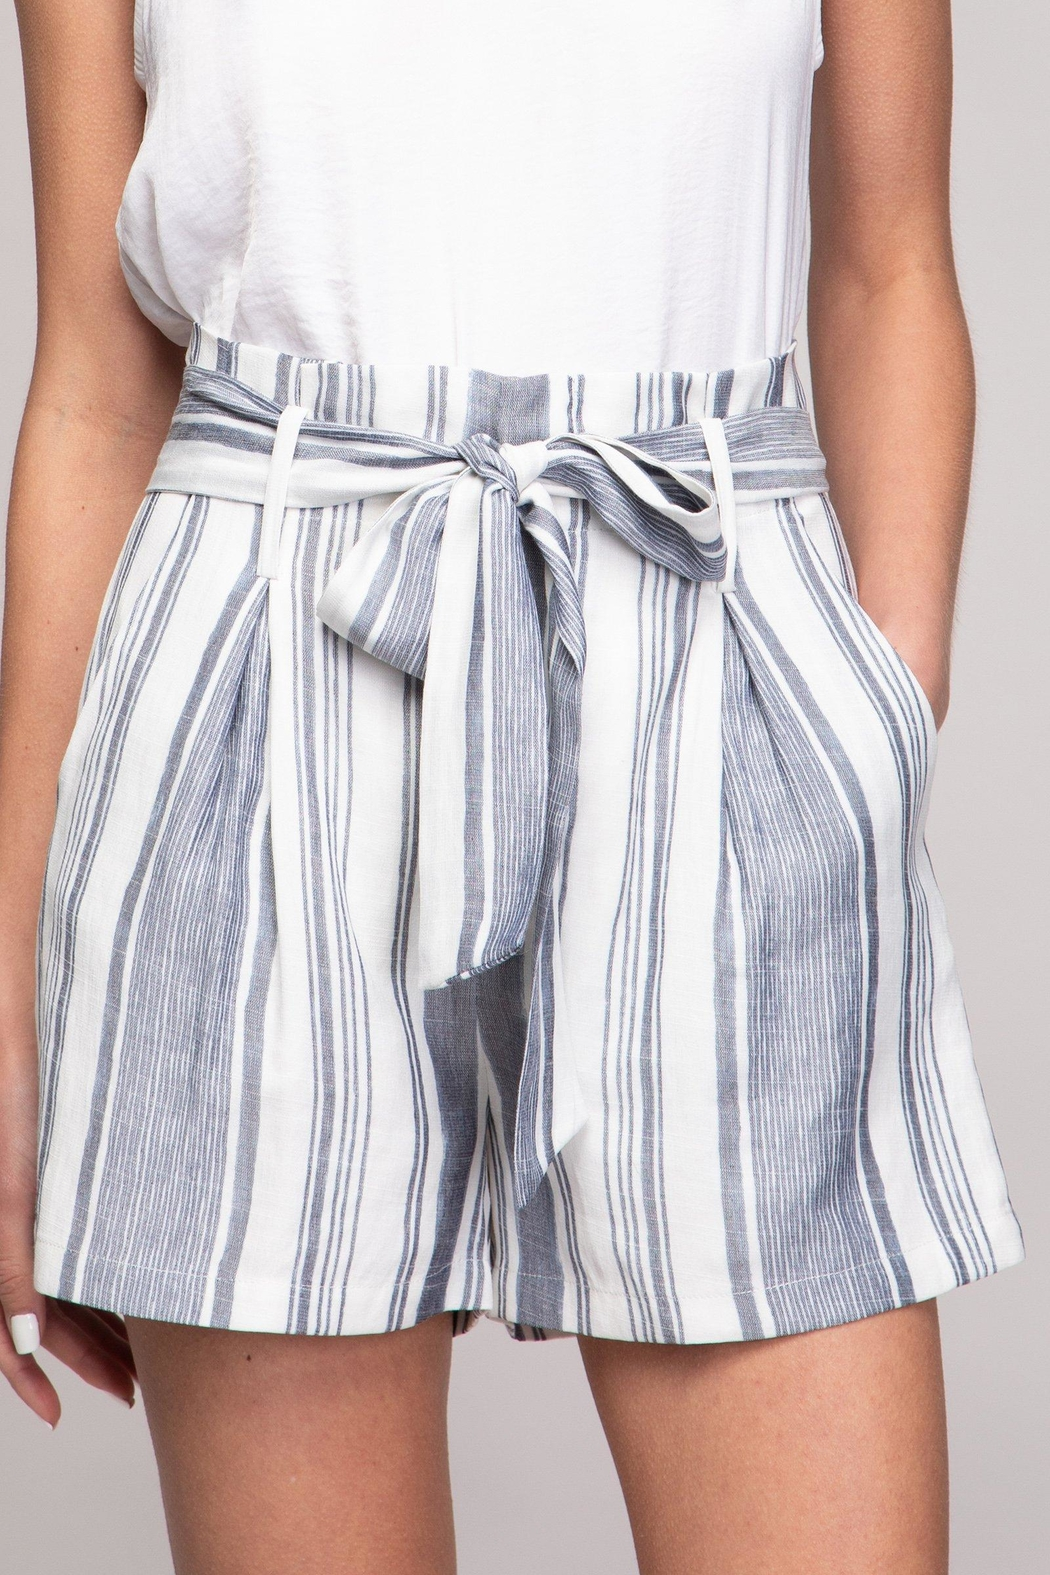 Naked Zebra Striped Printed Shorts - Front Cropped Image